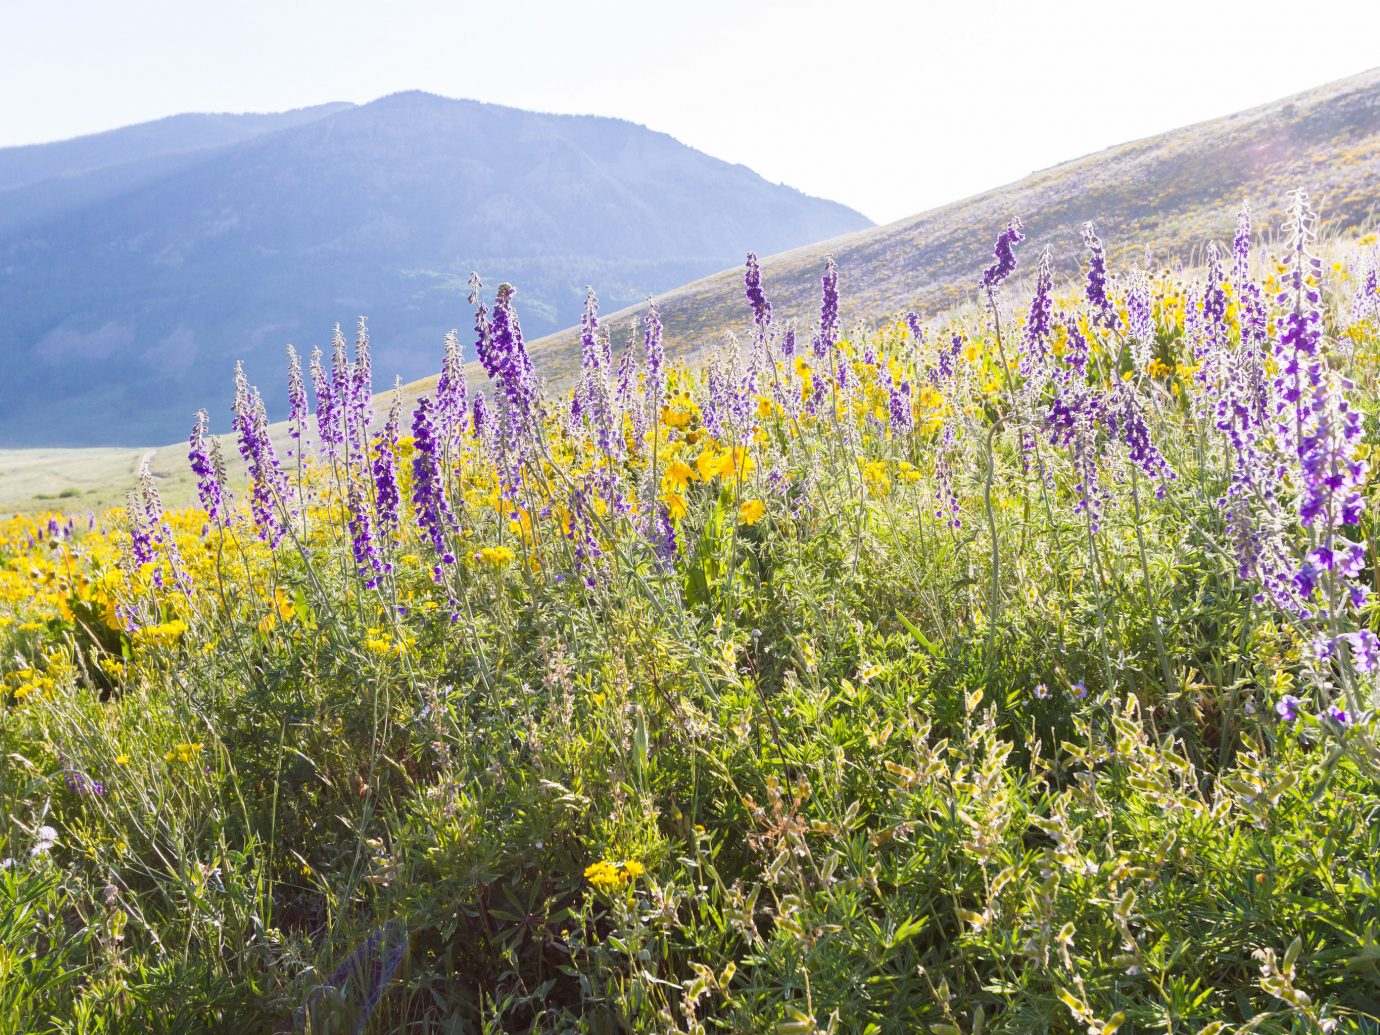 Trip Ideas outdoor sky mountain flower Nature plant flora natural environment grassland meadow prairie wildflower field grass land plant lupin rural area landscape flowering plant shrub tall